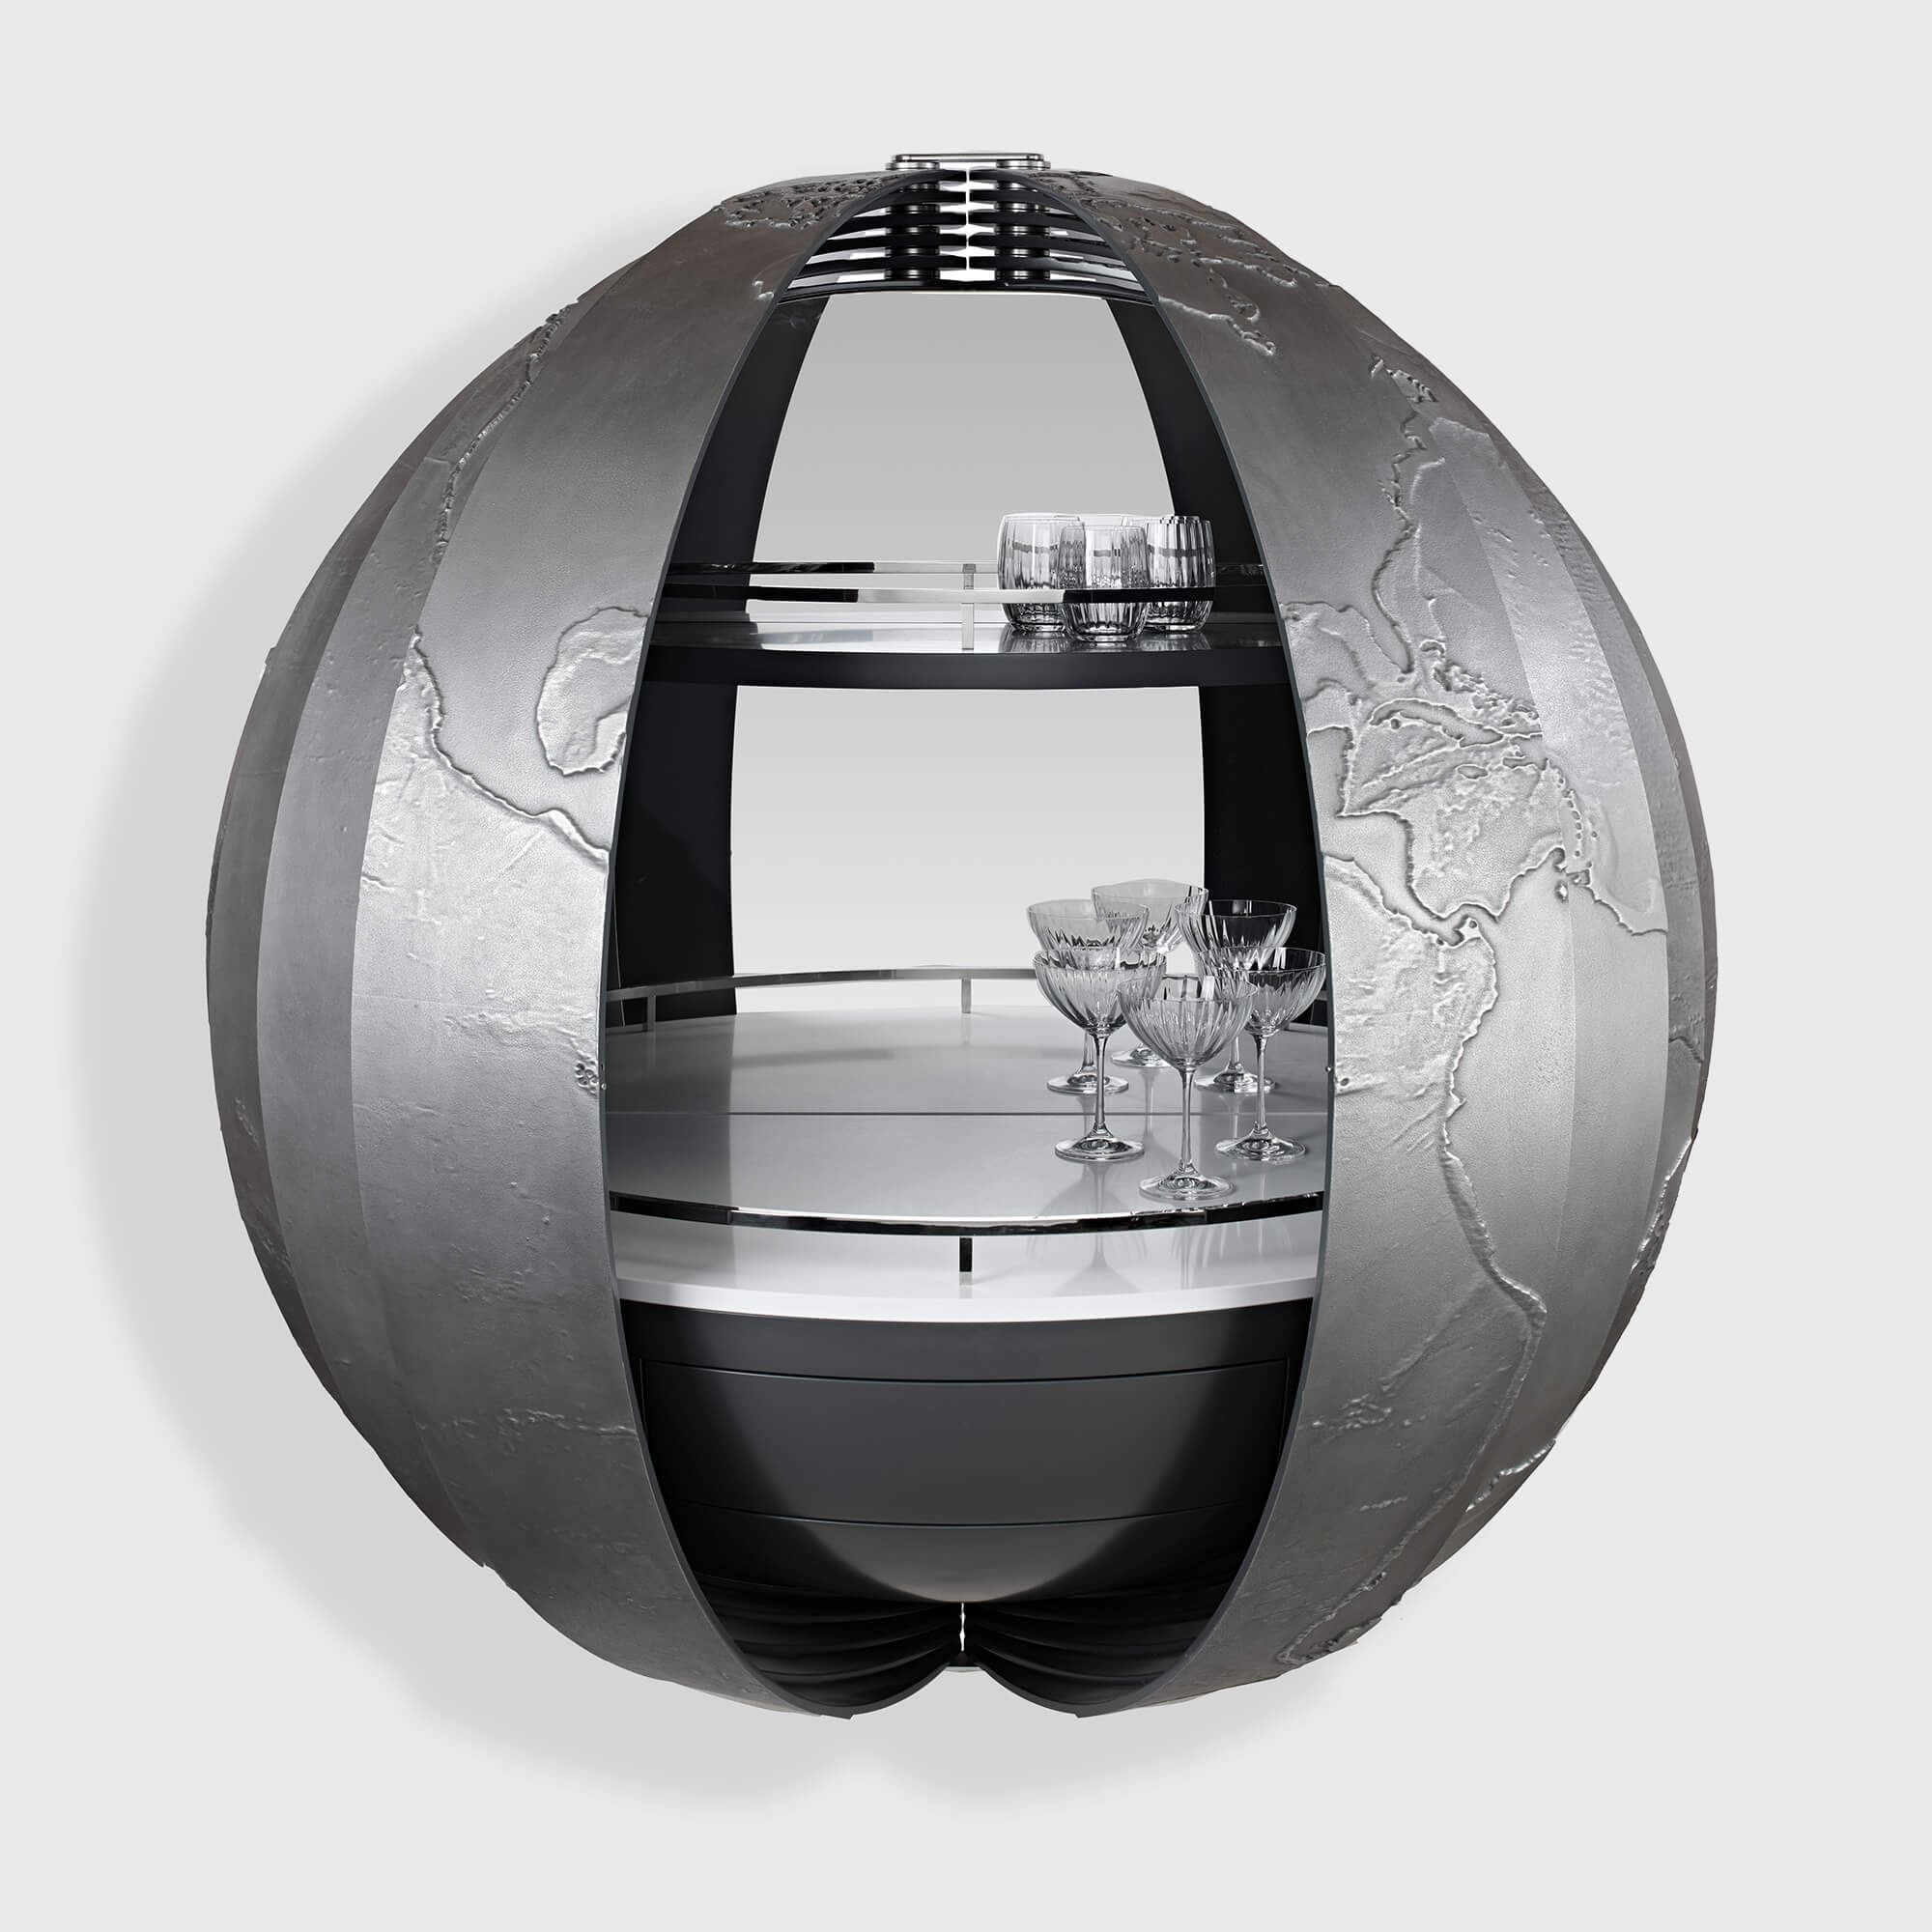 Custom globe drinks cabinet created by Splinterworks for Scout super yacht.